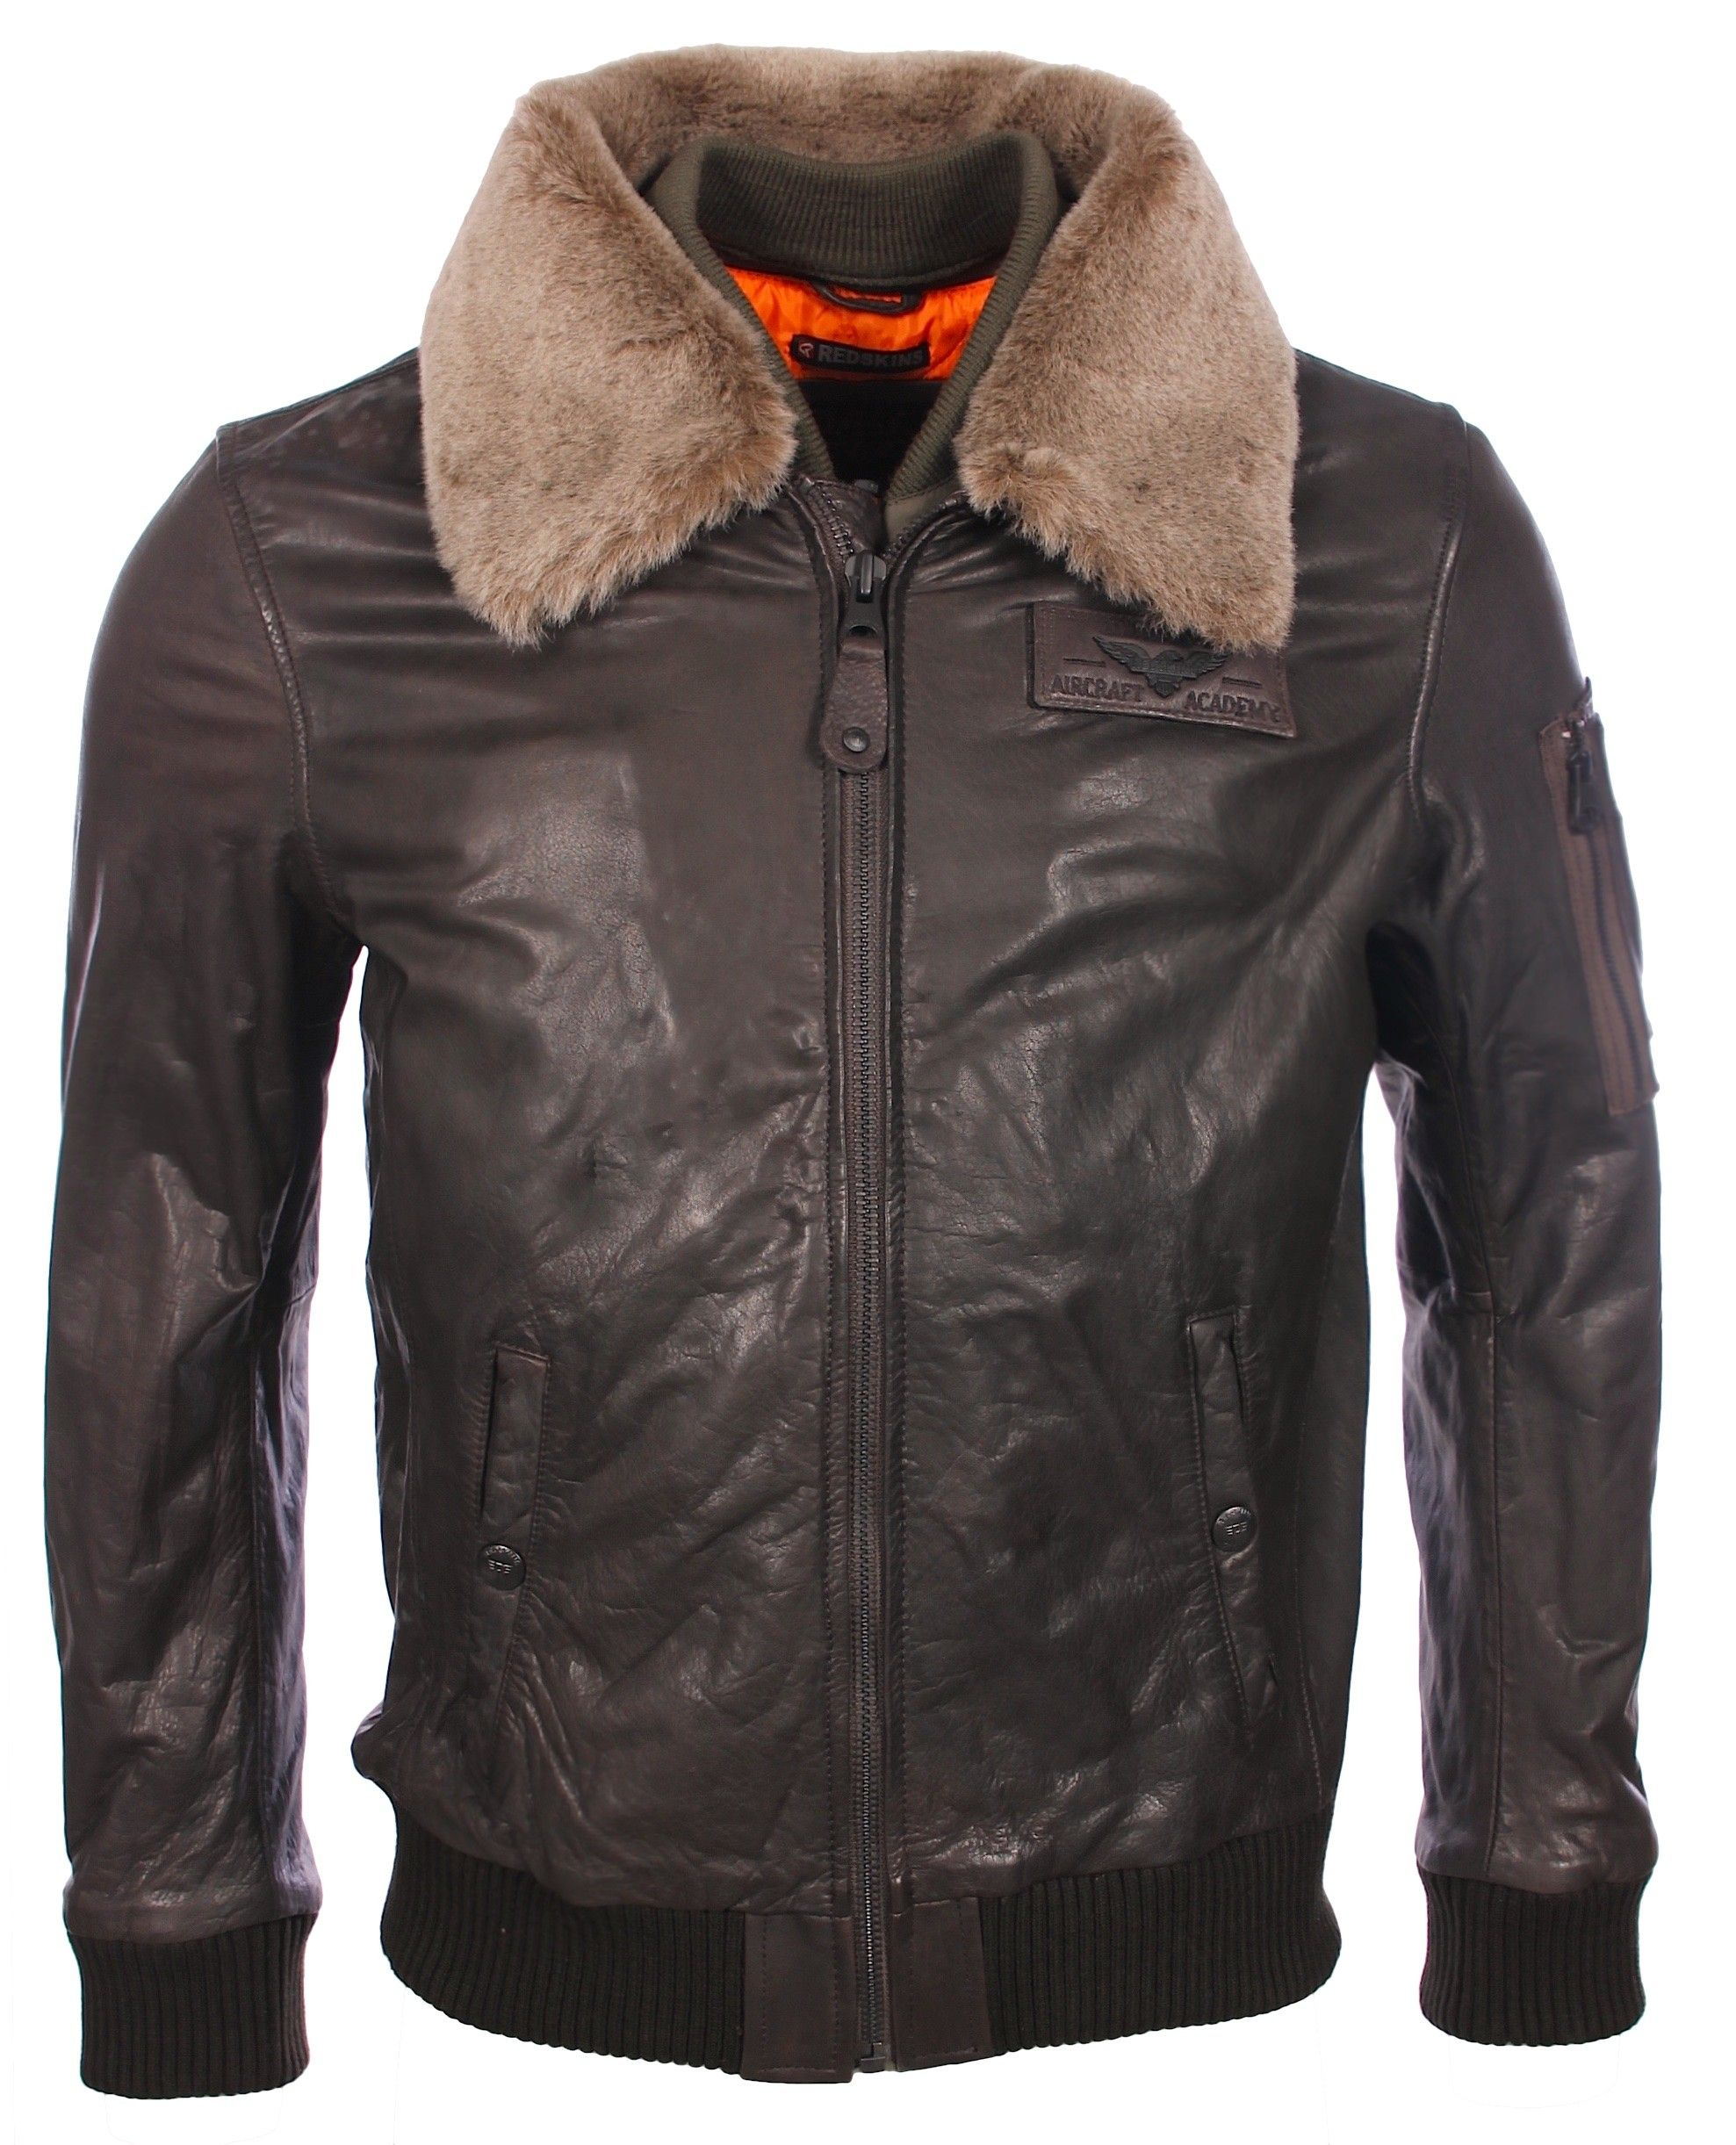 VESTE EN CUIR MARRON REDSKINS